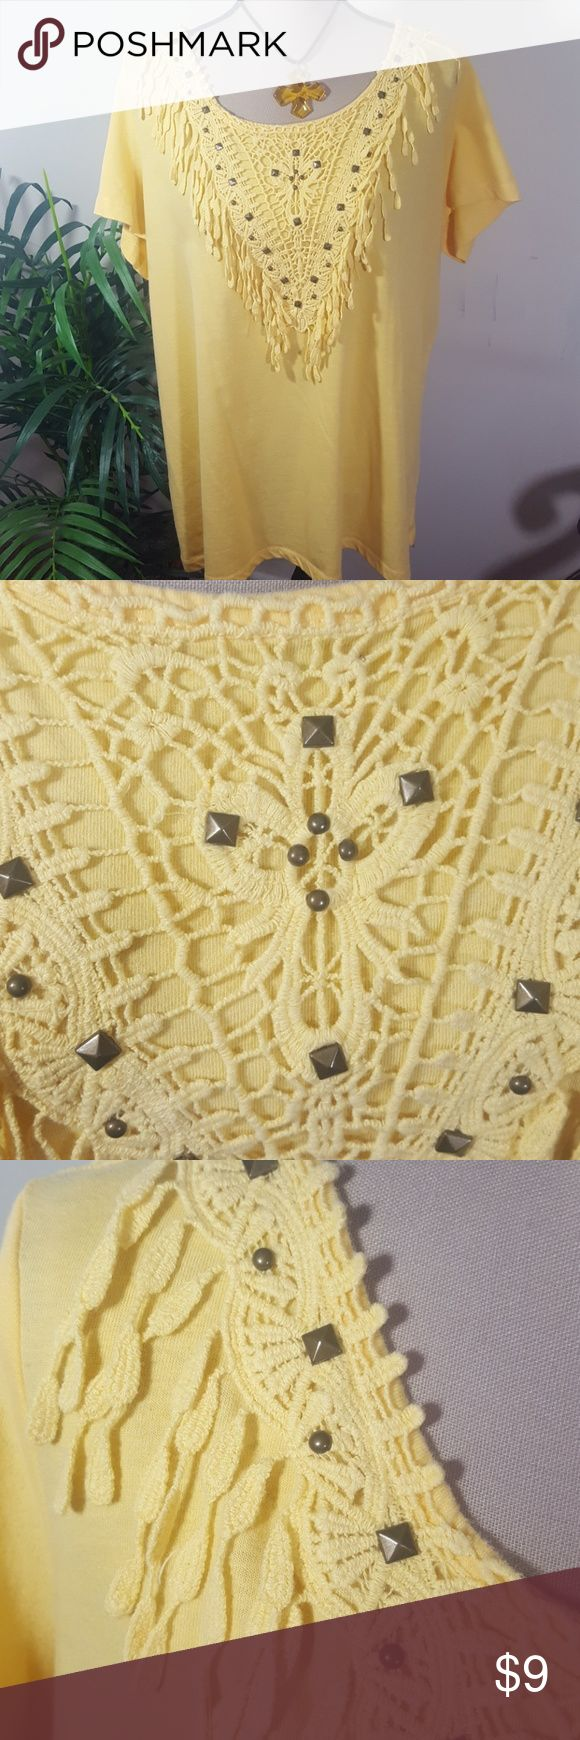 YELLOW BLOUSE !💥 Yellow fringed blouse! Crochet accent on front with metal accents for embellish.  Tag is missing, but material is cotton and size 1X. Good Condition. Tops Blouses